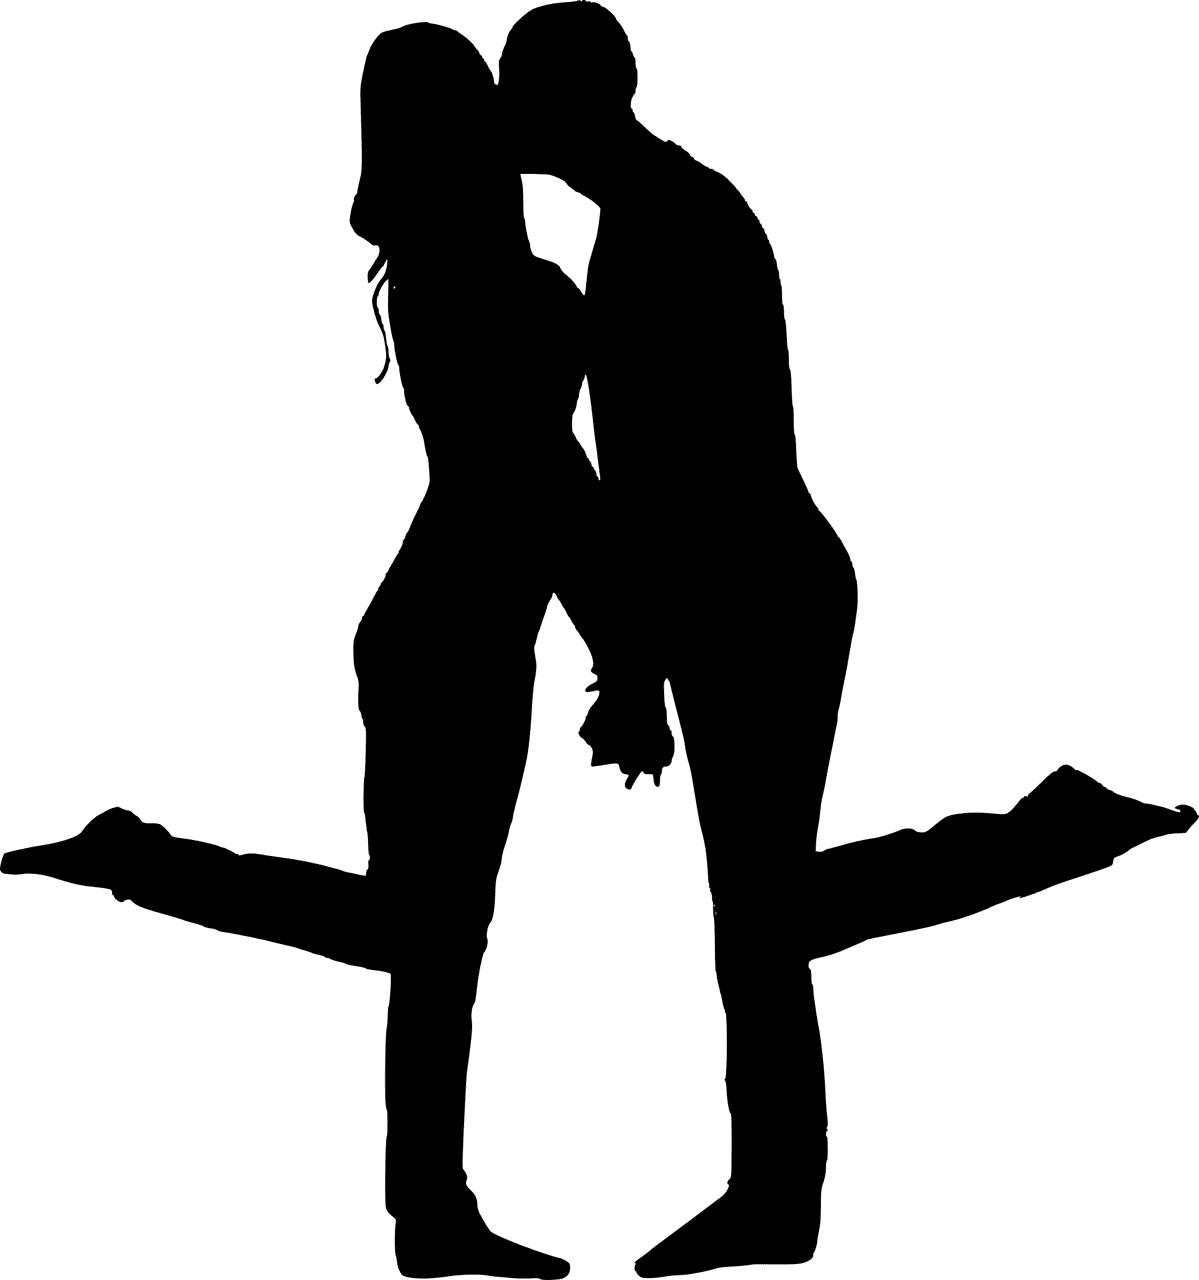 A silhouette of a happy couple | Source: Pixabay